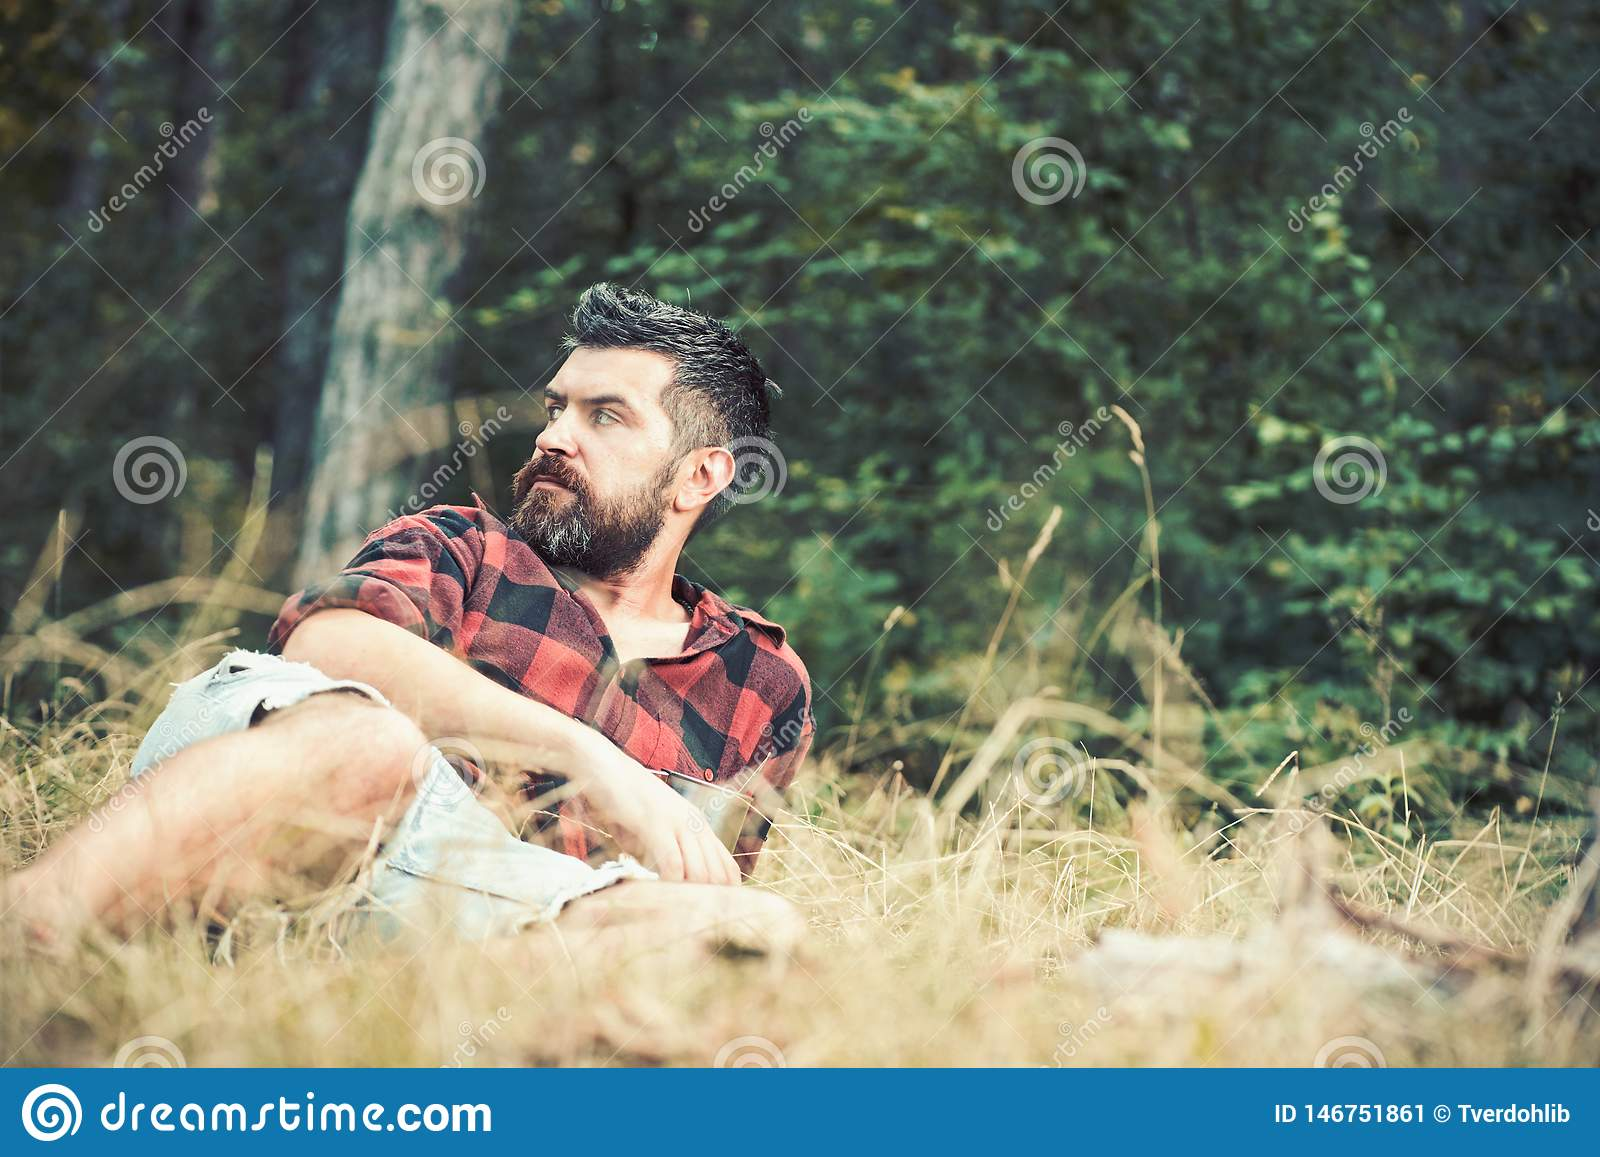 Guy lying on grass in park or forest. Camping in woods. Bearded man with blues eyes looking to the side. Summer leisure